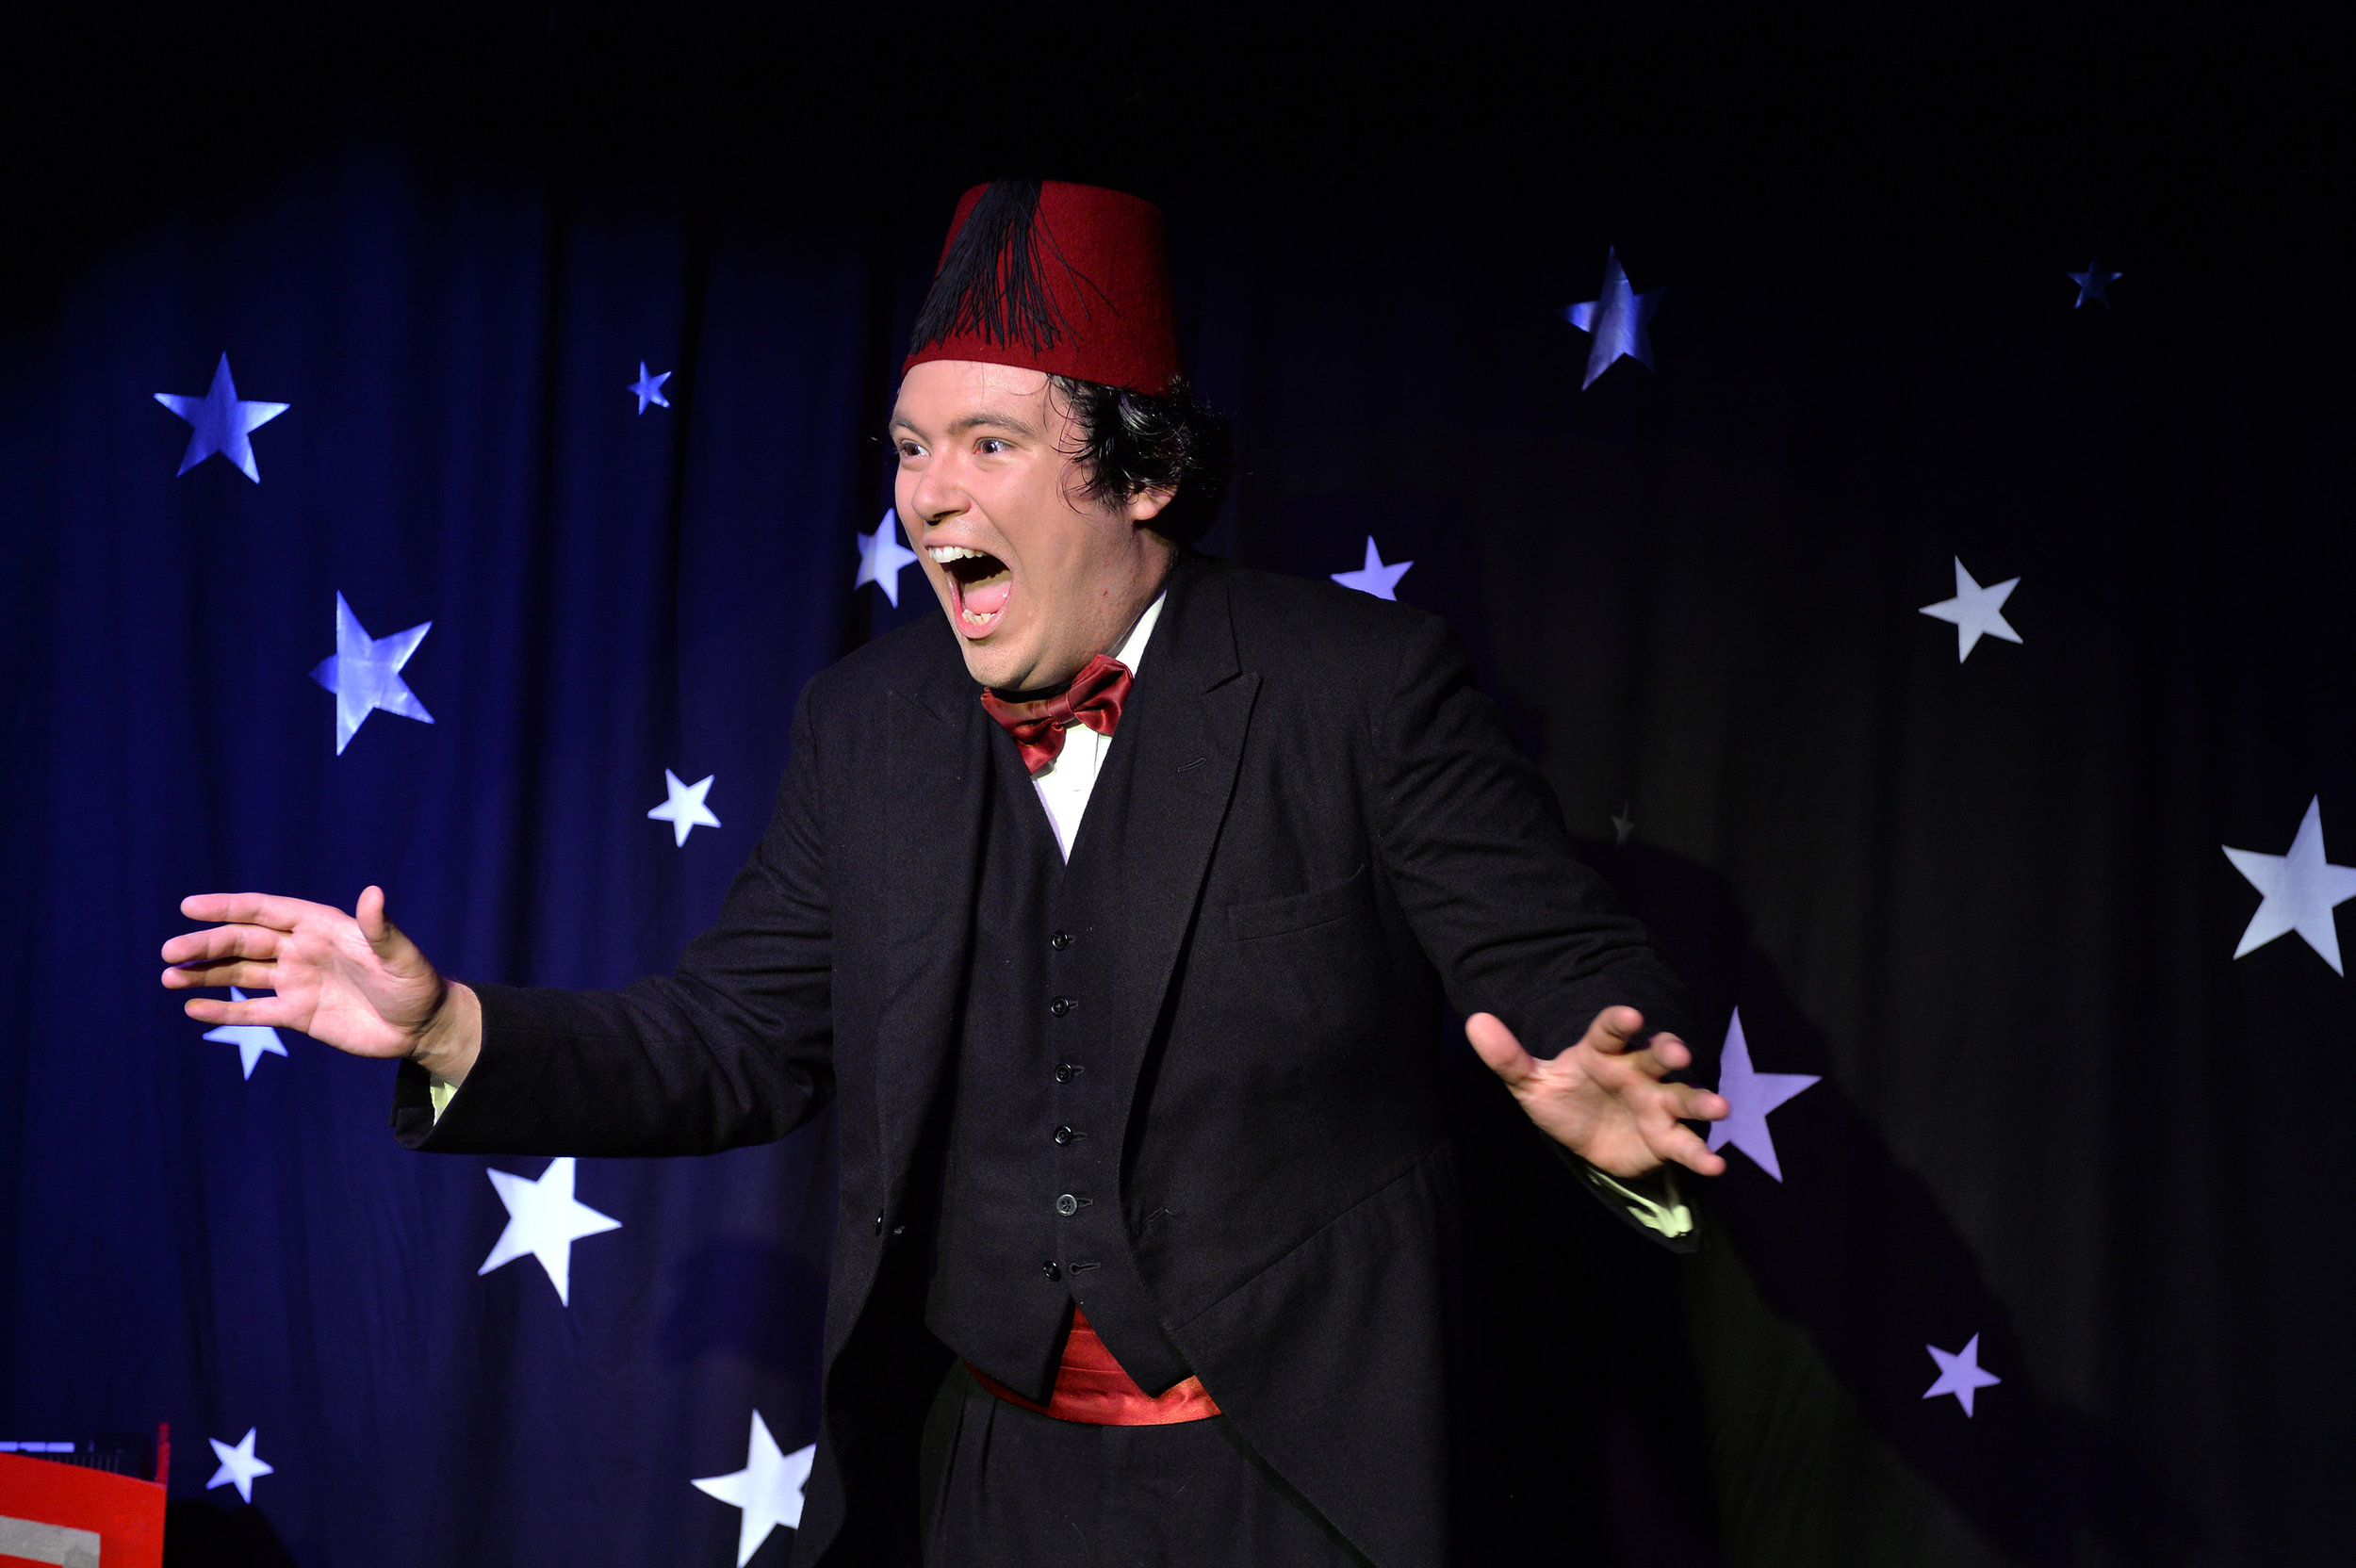 John Hewer as Tommy Cooper Photo: Steve Ullathorne